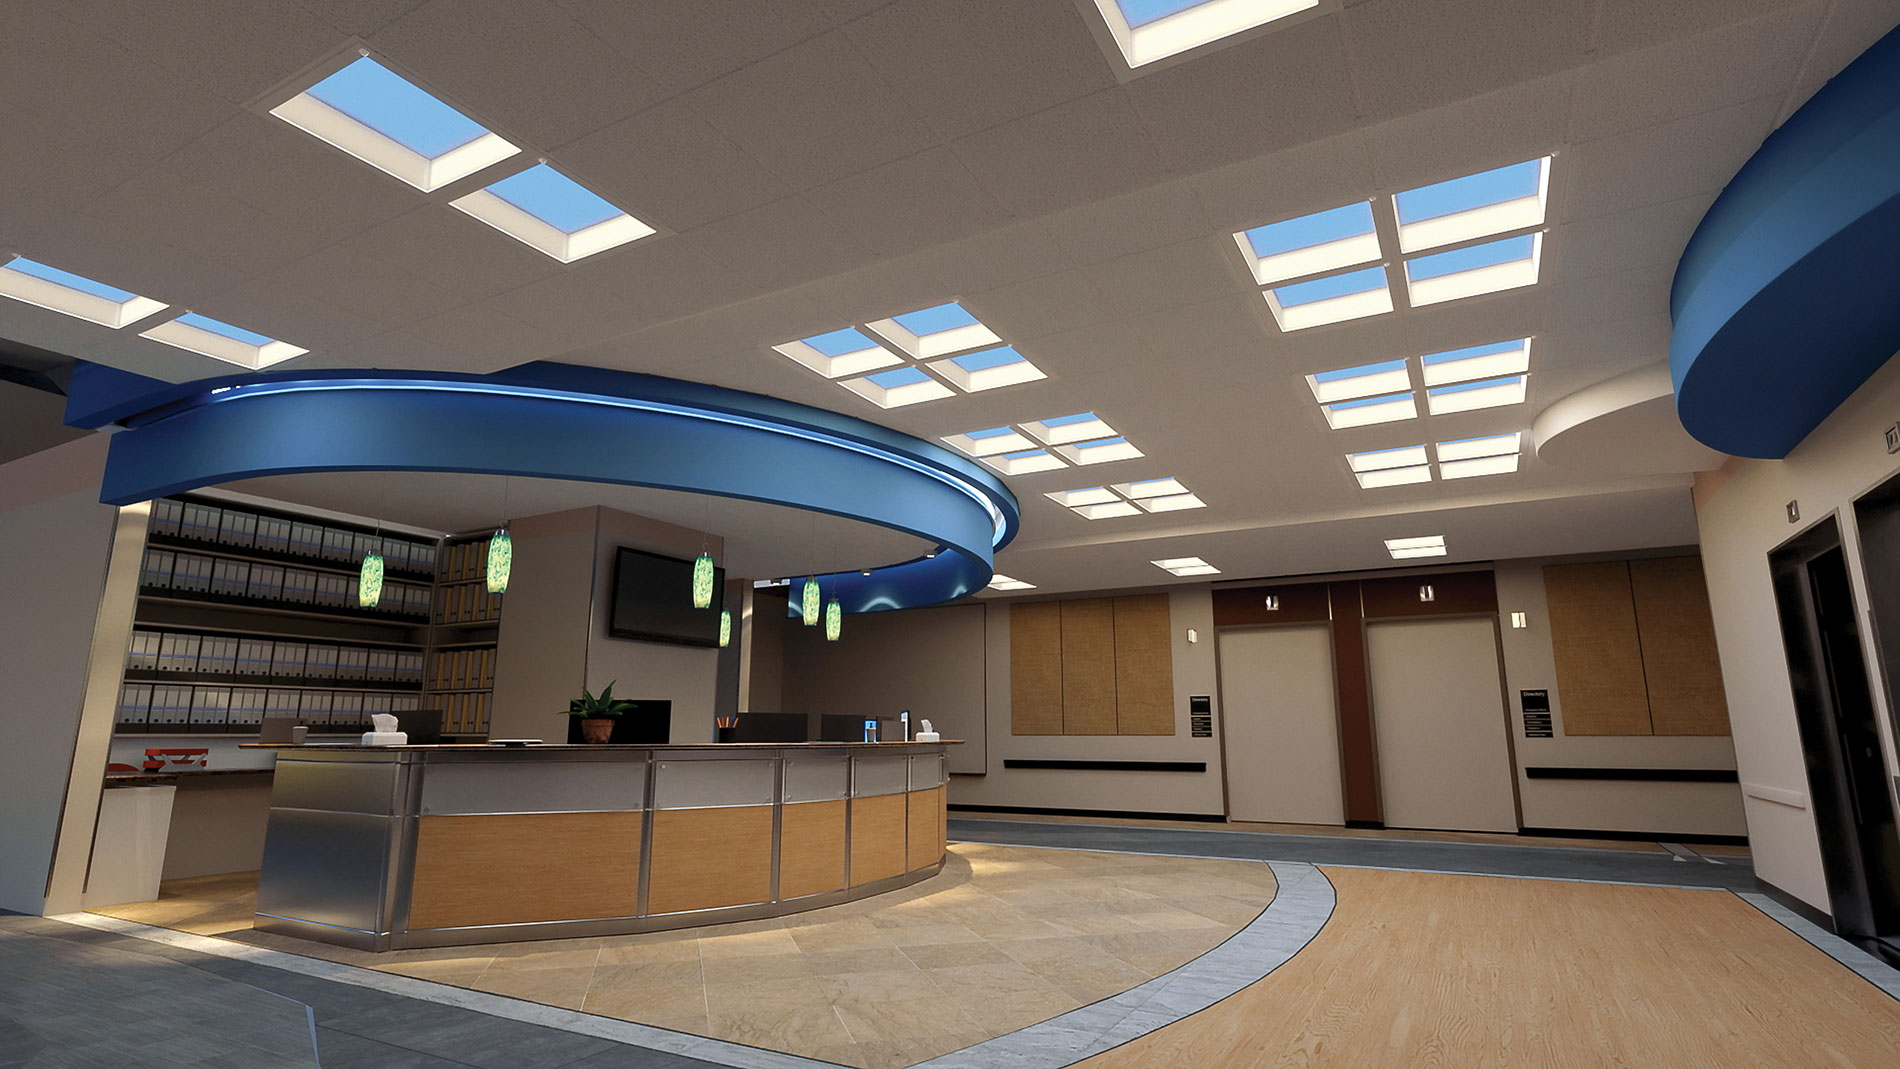 This hospitality-style hospital reception desk is under Cree Cadiant Dynamic LED skylights, which  simulate daylight. According to Cree's Kathryn Caspar, research has found that controlling LEDs to mimic natural light can positively affect the human body.